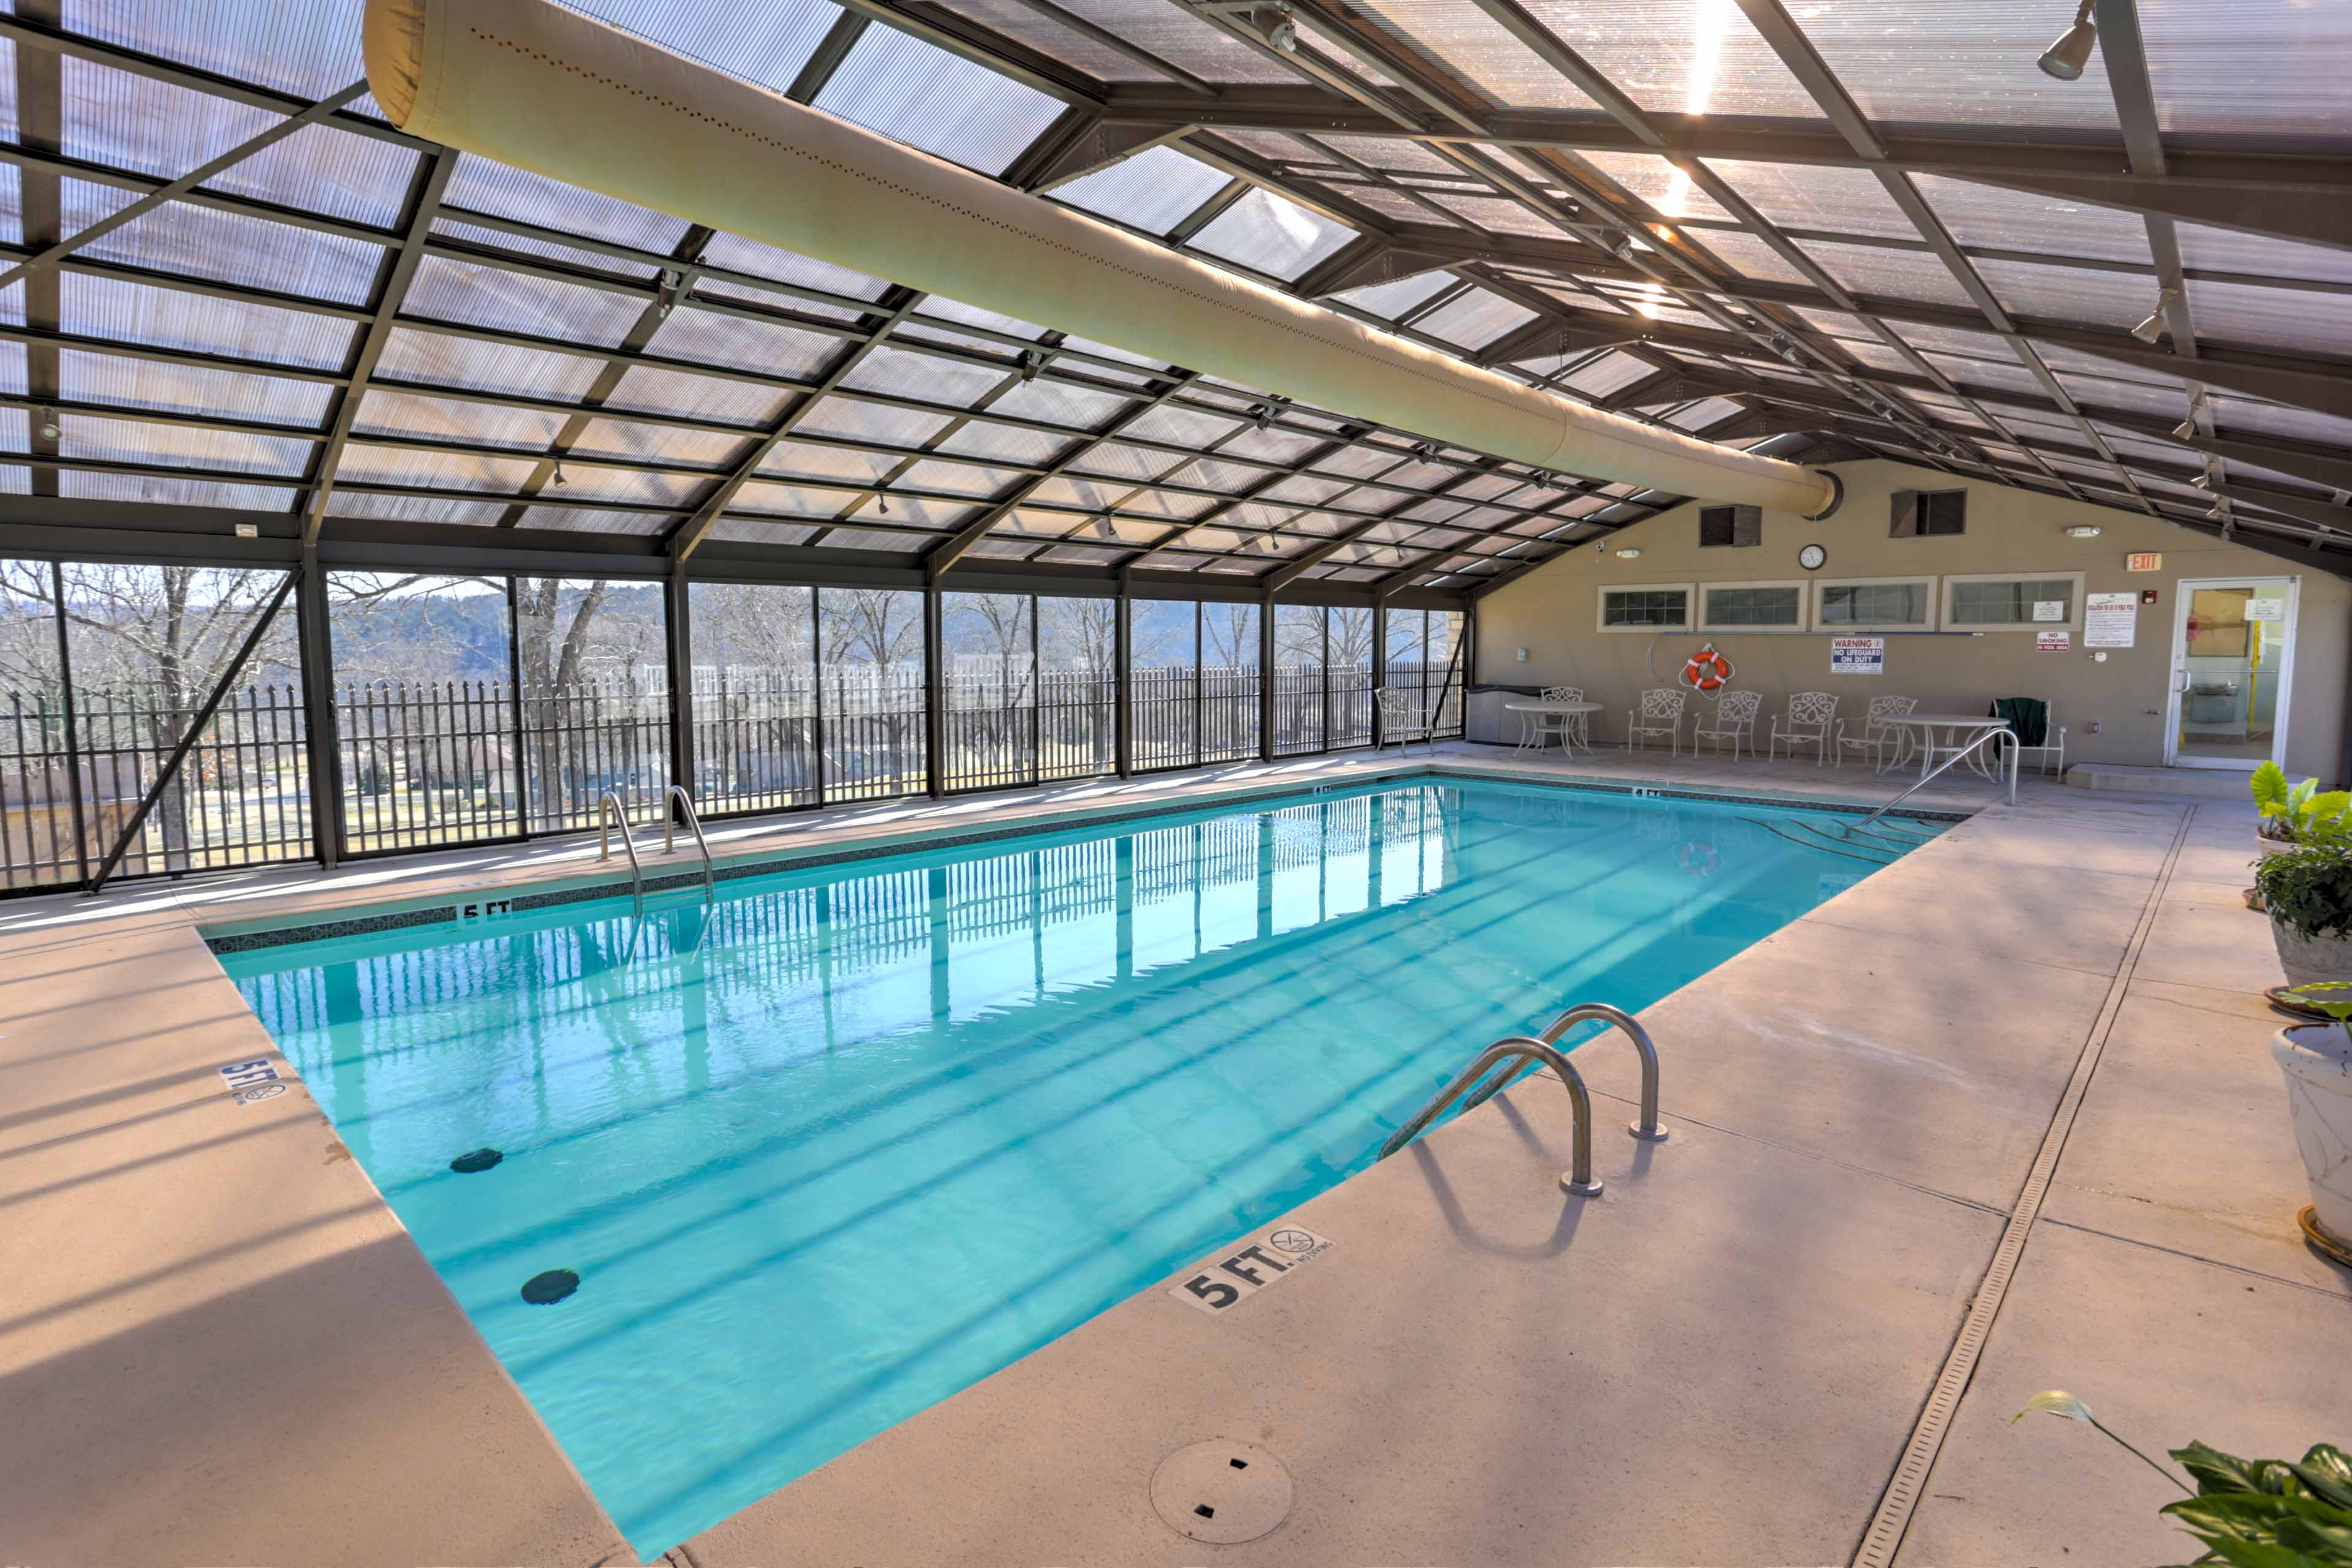 Swim even in the dead of winter at this resort-style indoor pool.